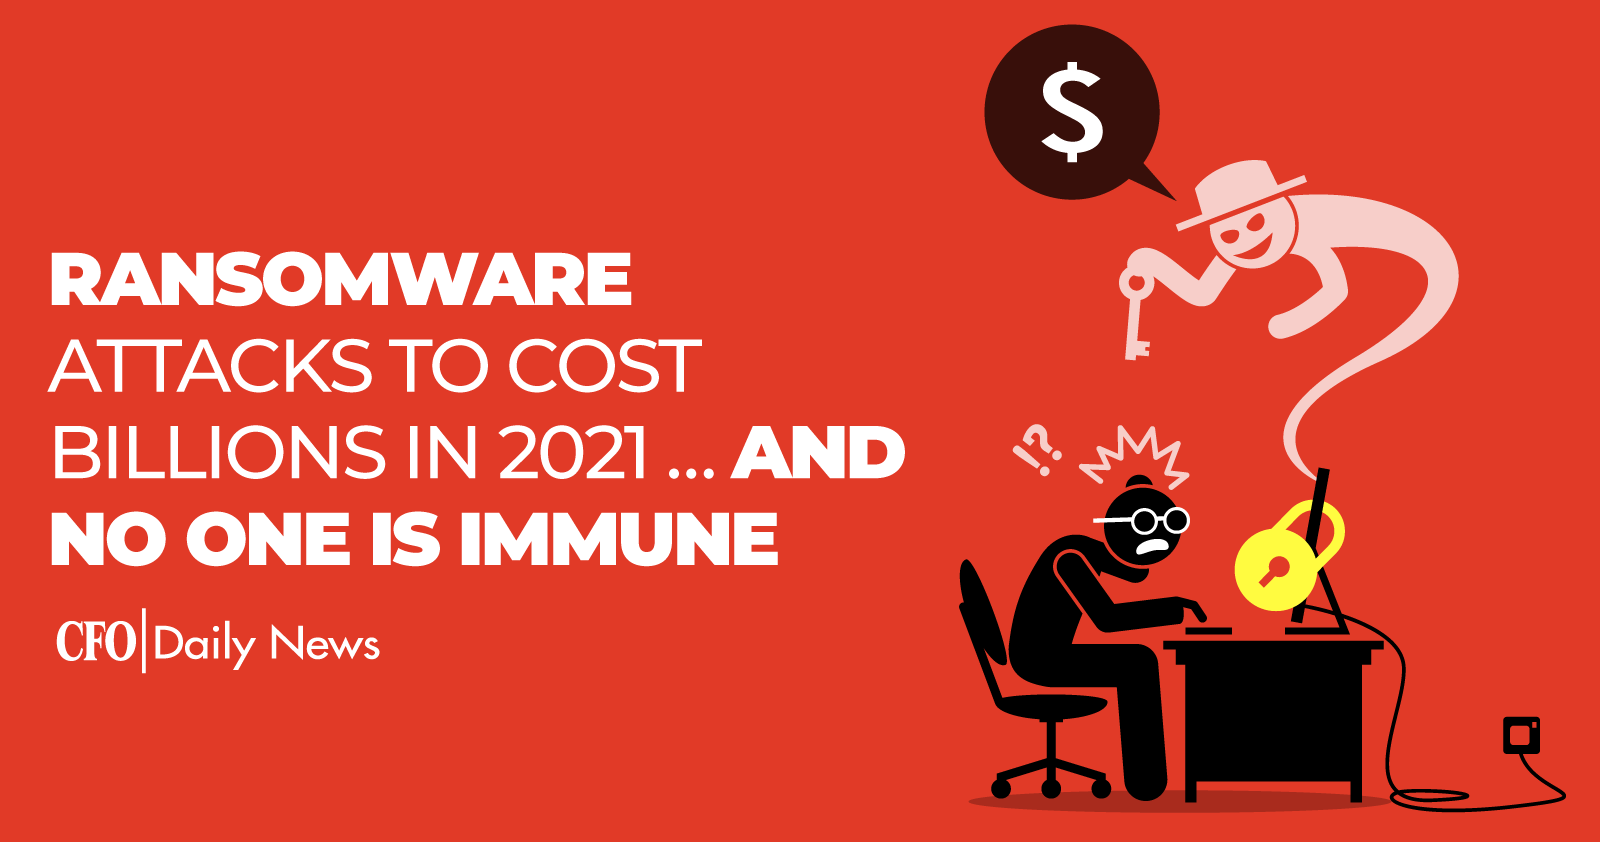 ransomware attacks to cost billions in 2021